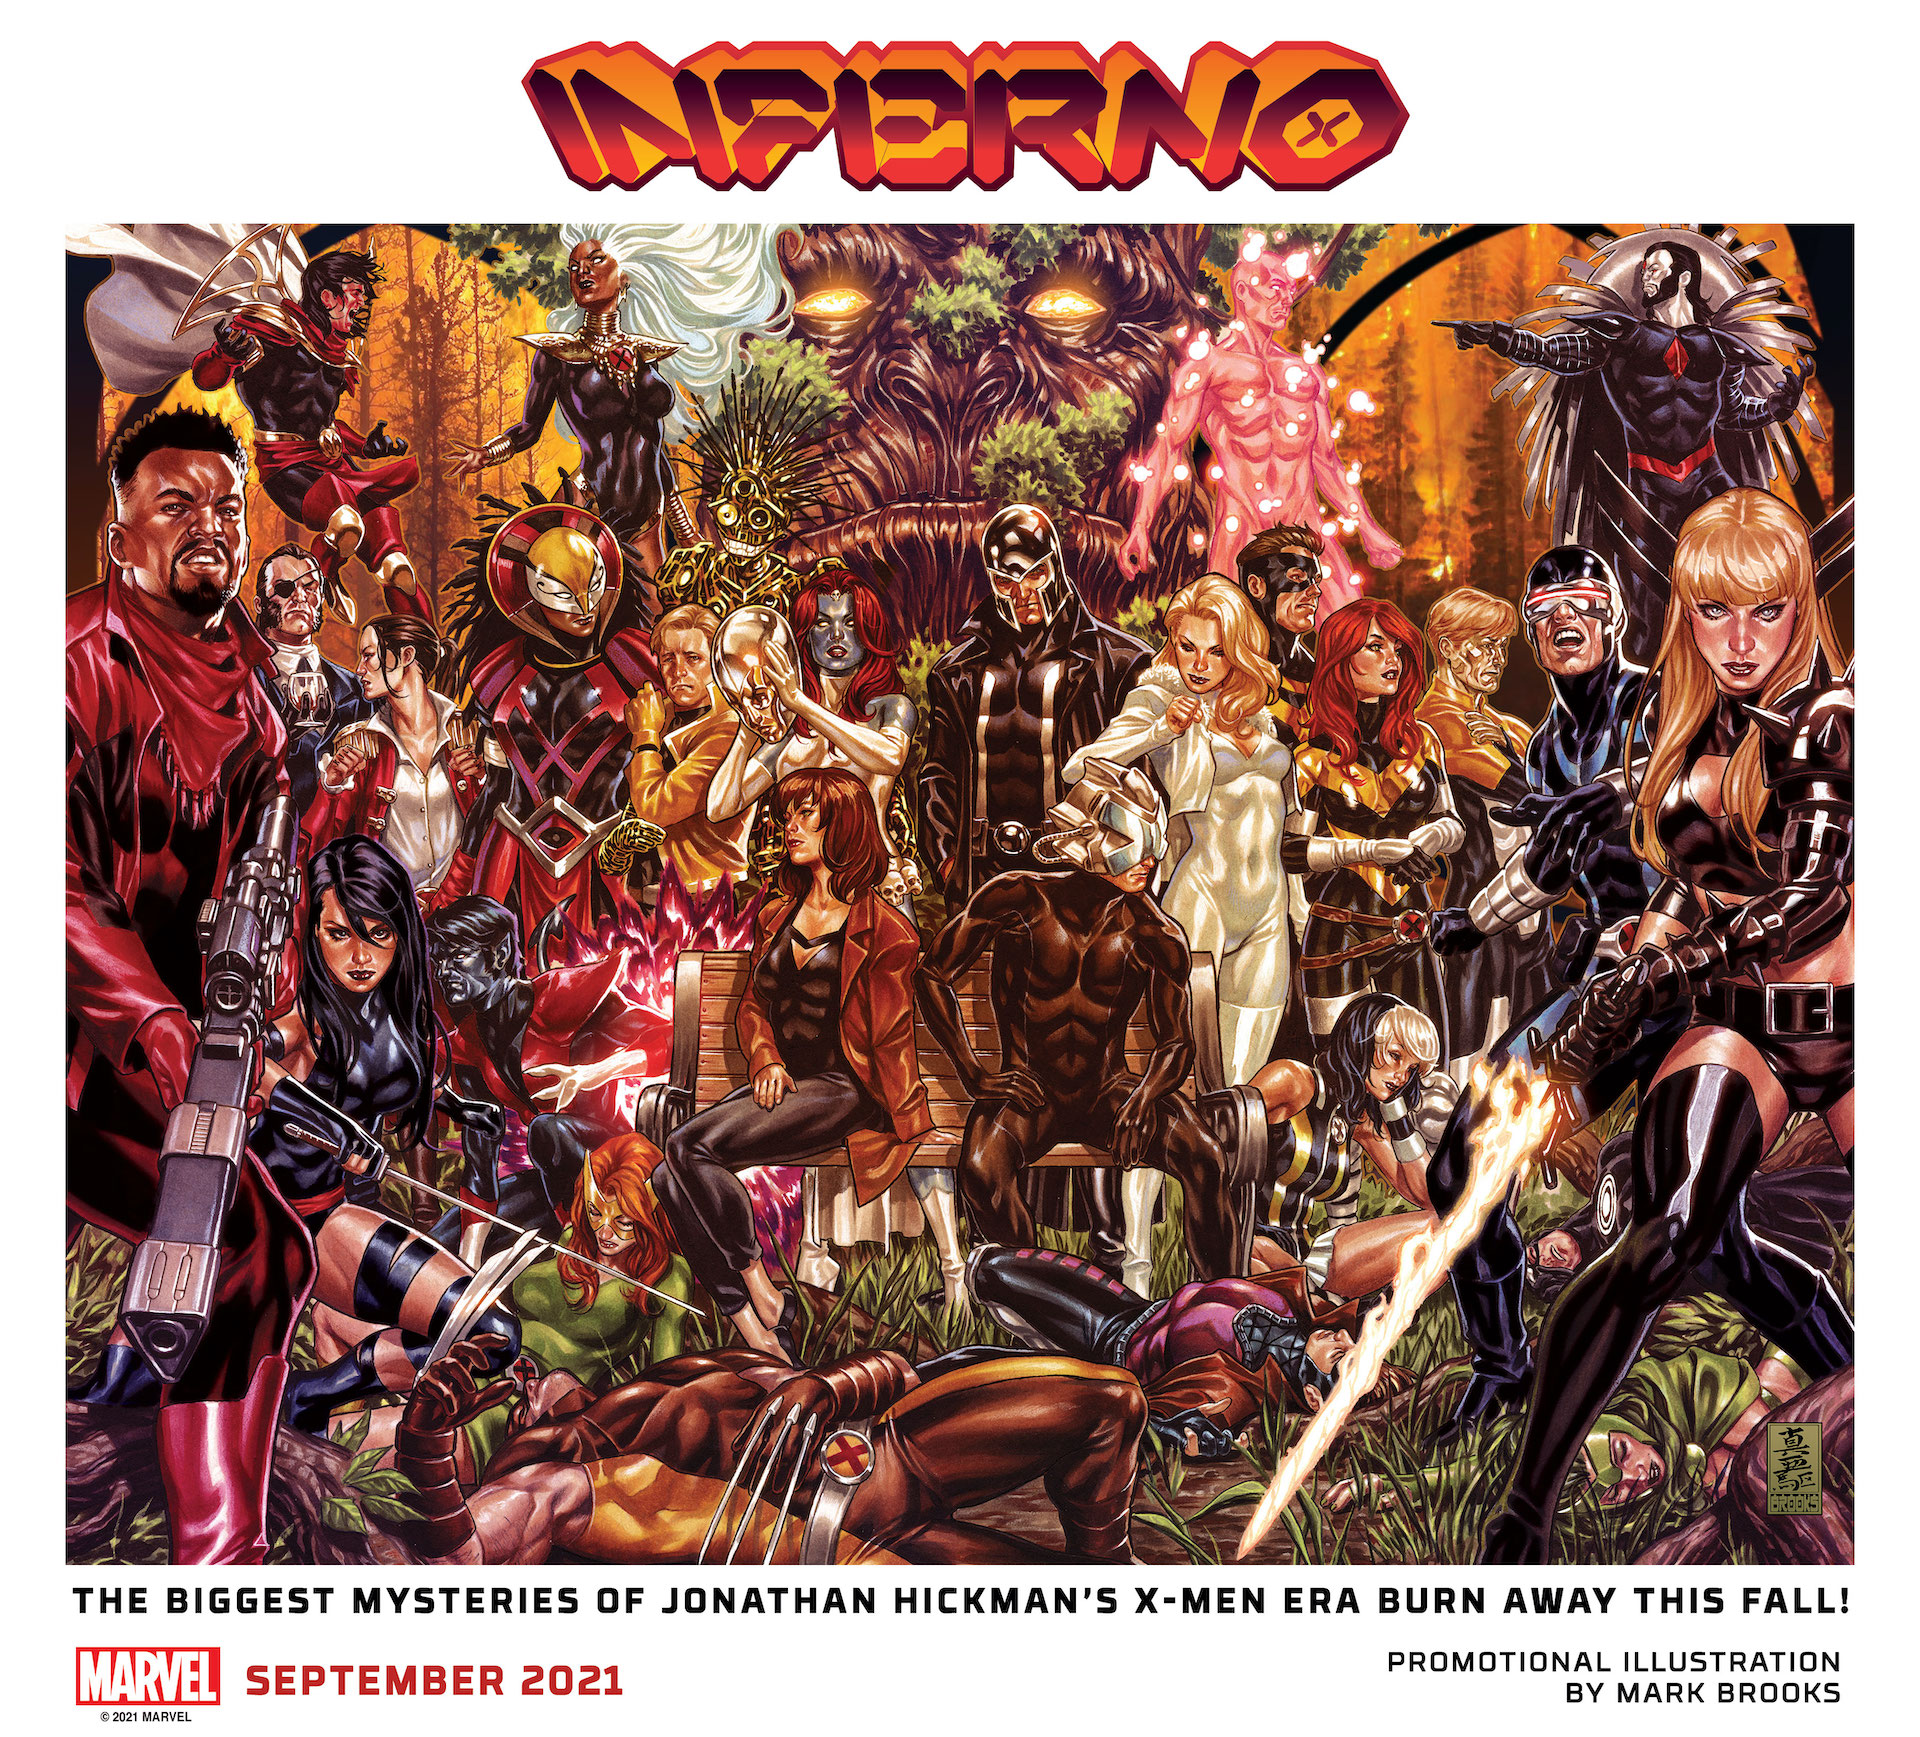 Jonathan Hickman exits X-Men with 'Inferno' this fall